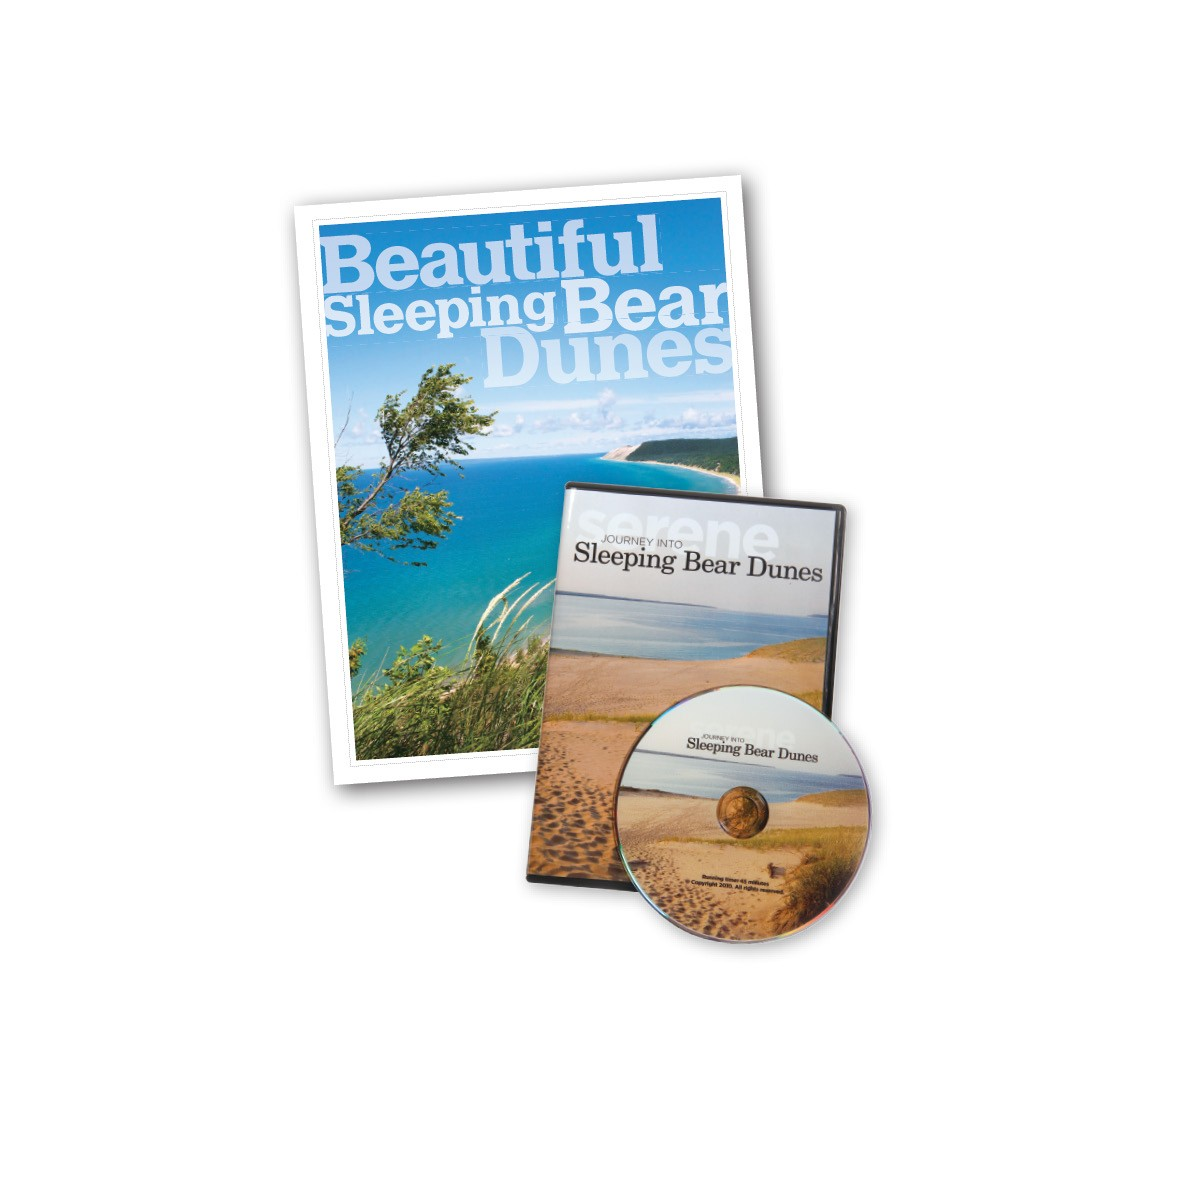 Beautiful Sleeping Bear Dunes Book and DVD Package brings the Sleeping Bear Dunes to life!